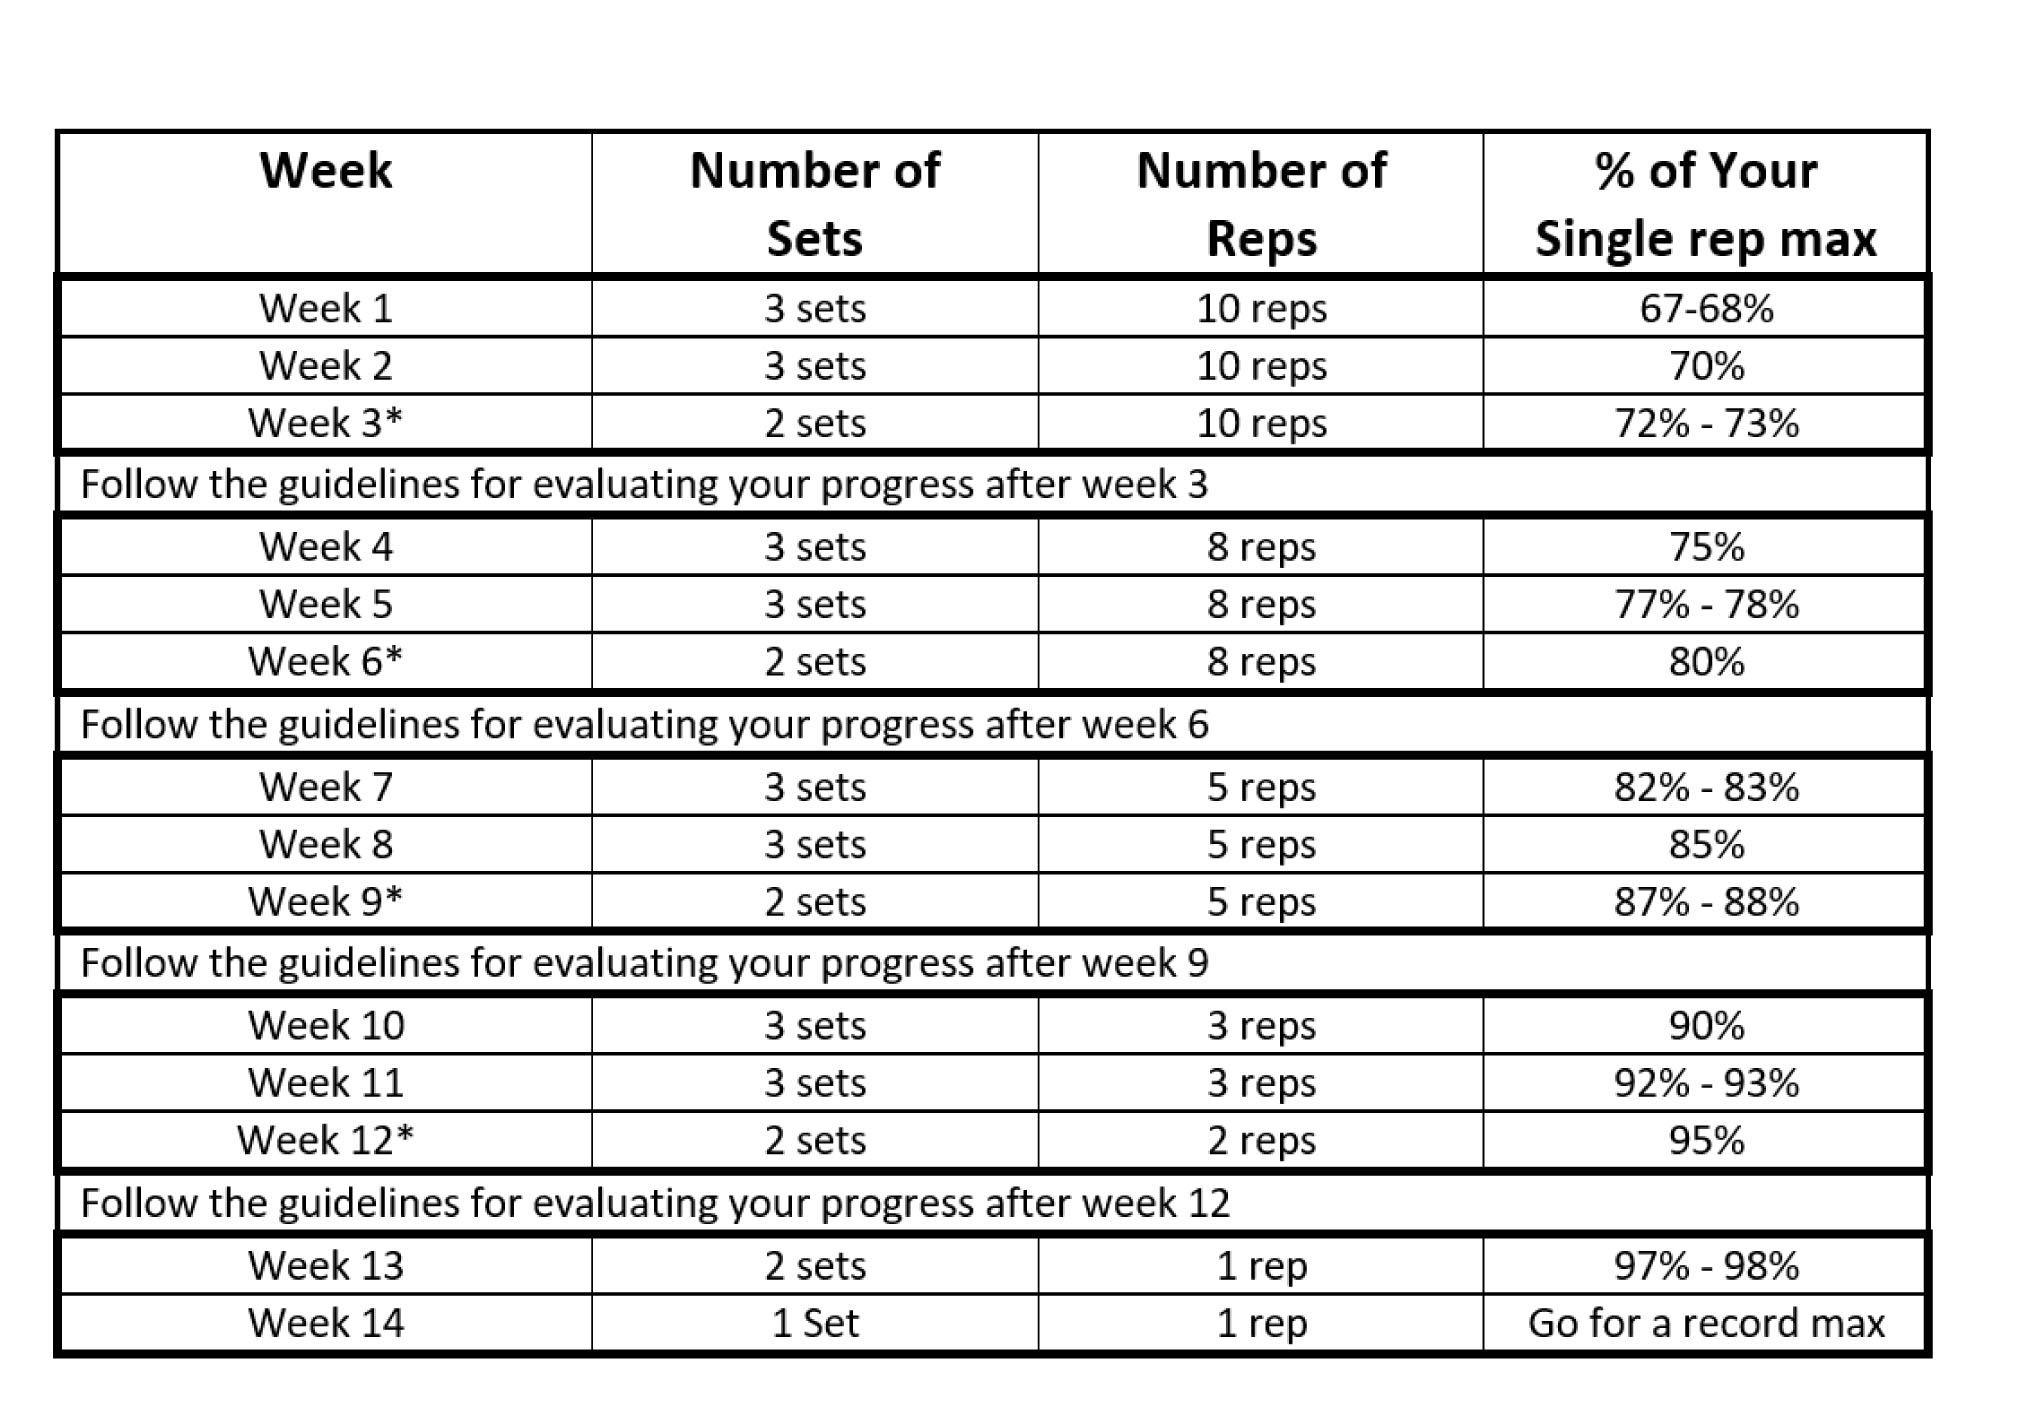 rp templates free - self calculating spreadsheet for 14 week linear periodization